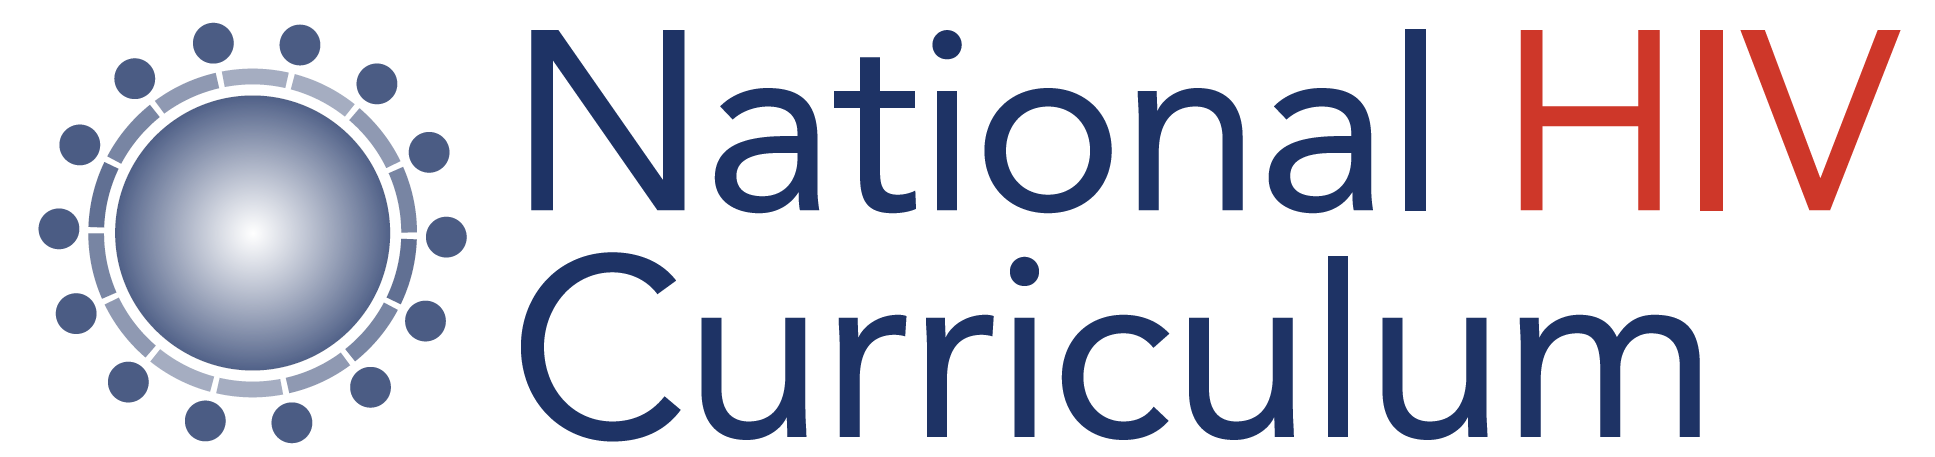 national hiv curriculum logo